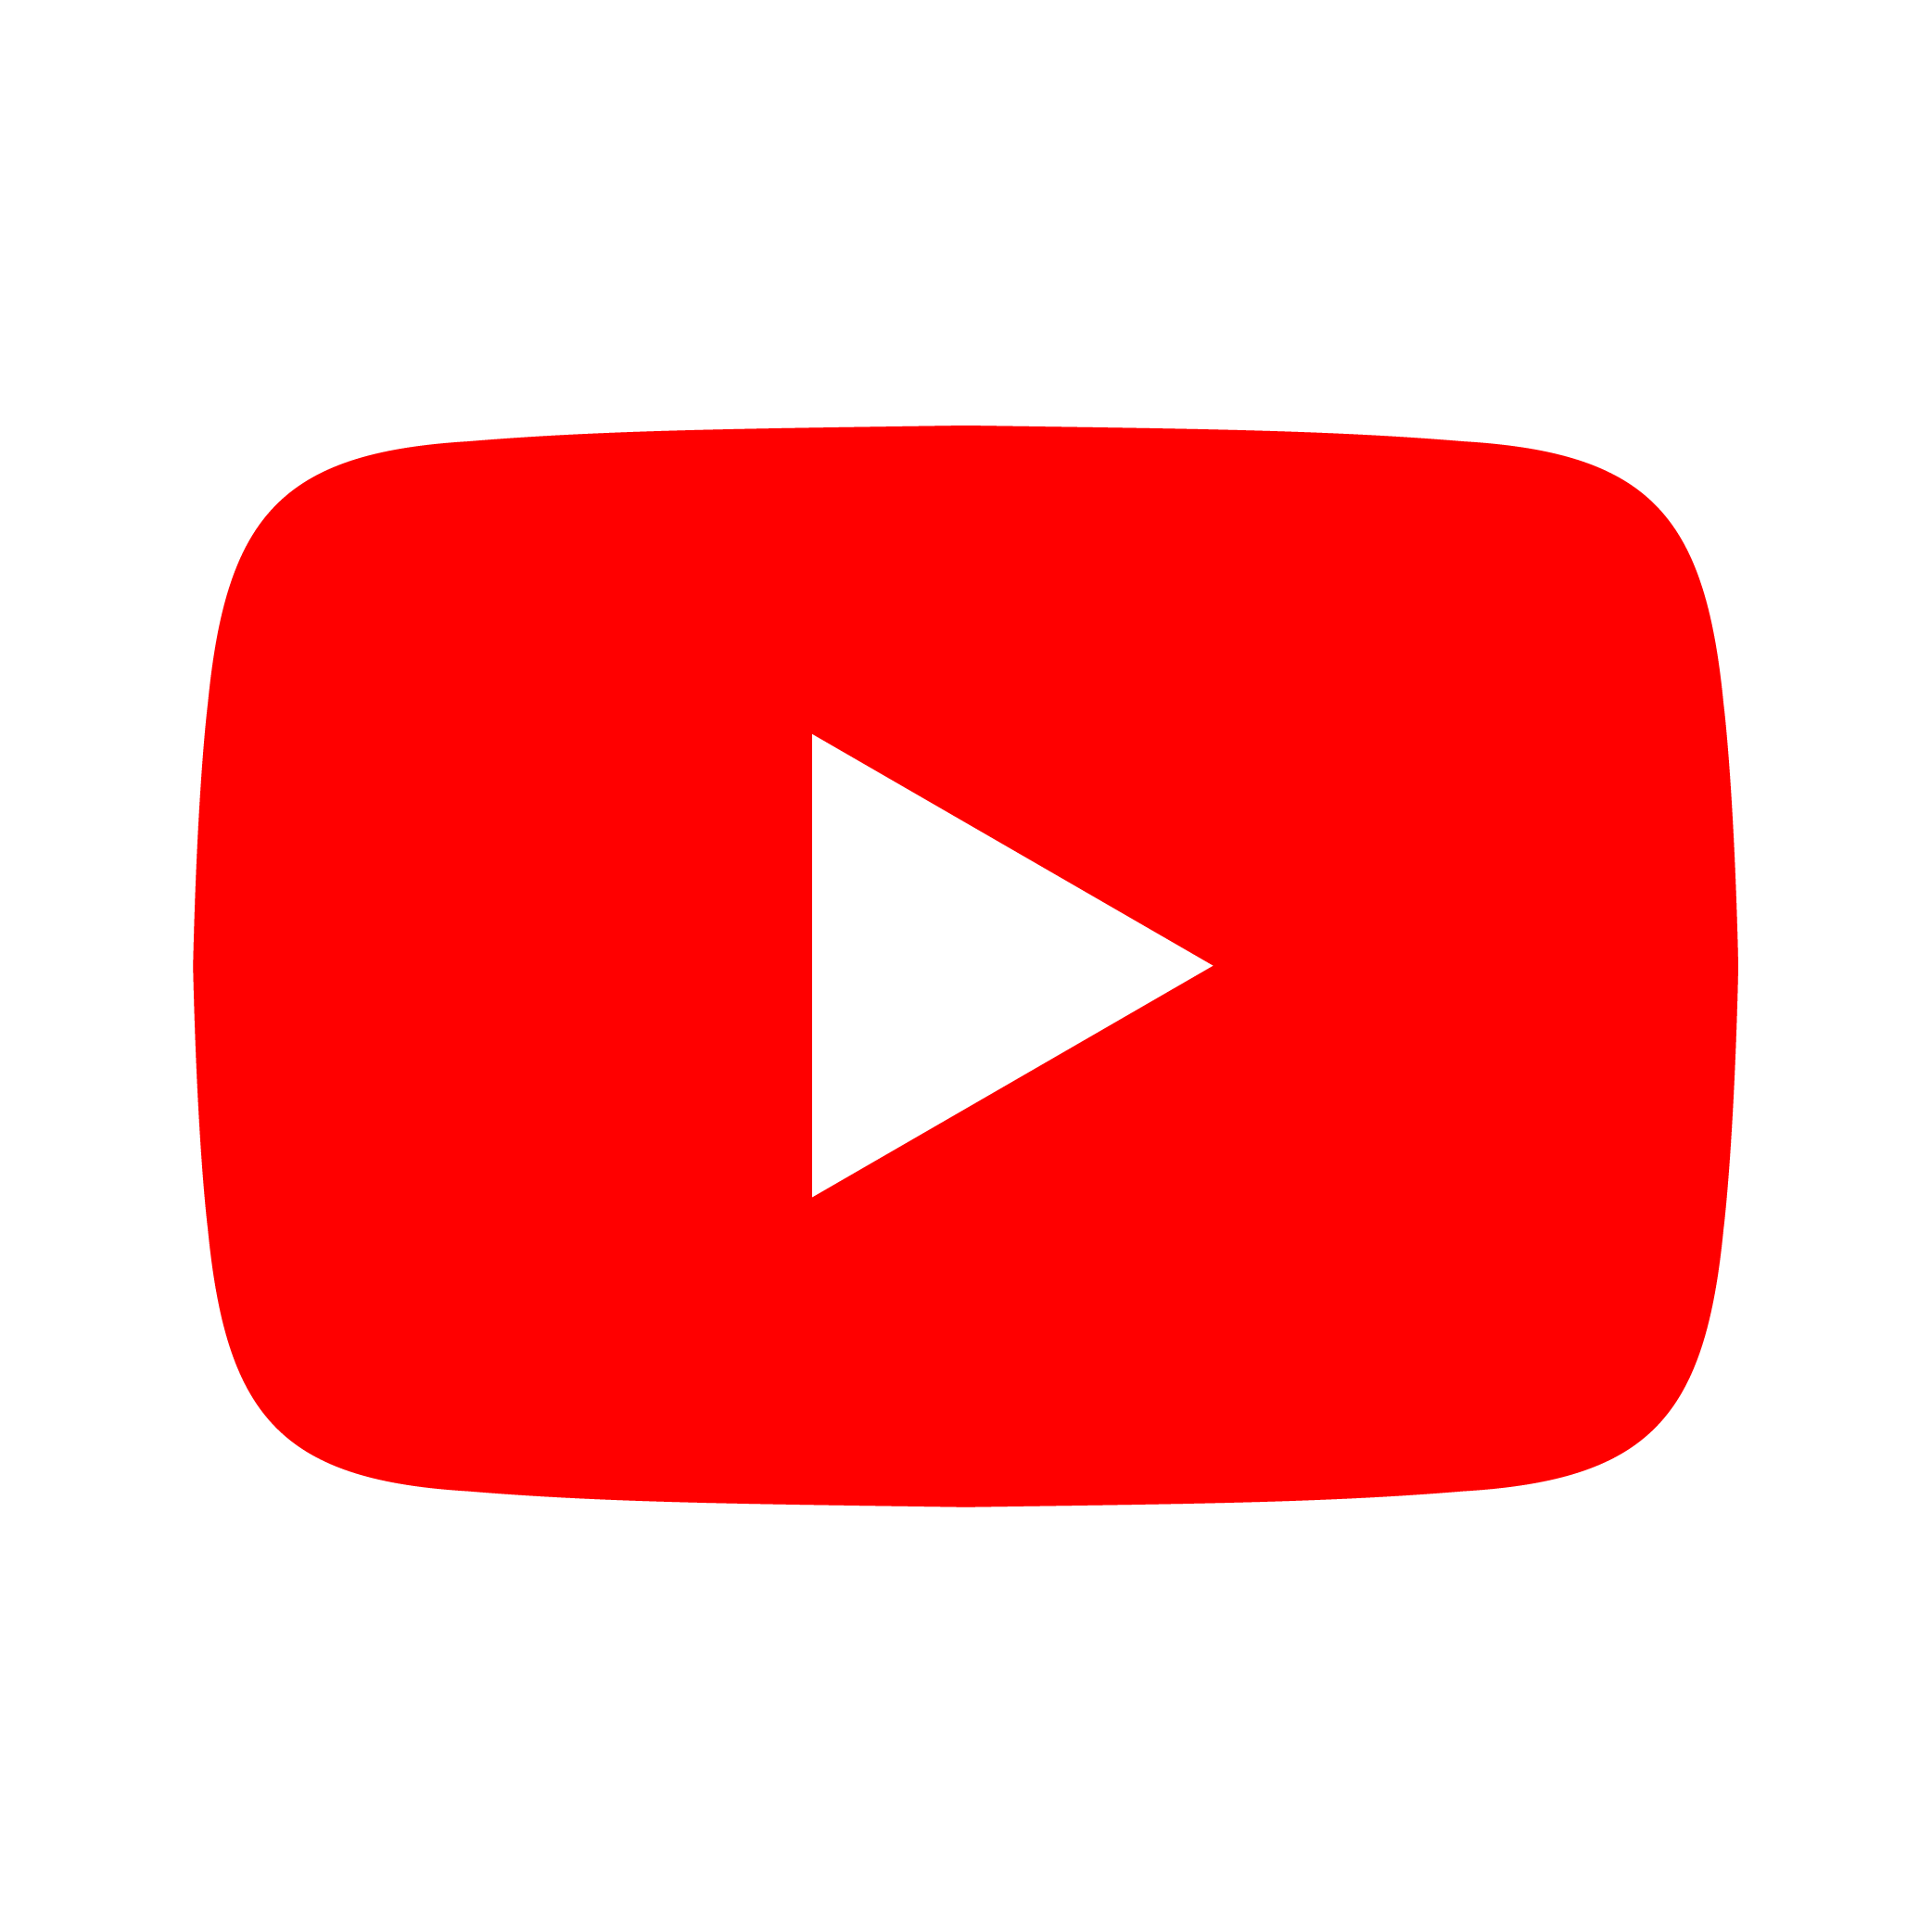 Why No One Watches Your Videos